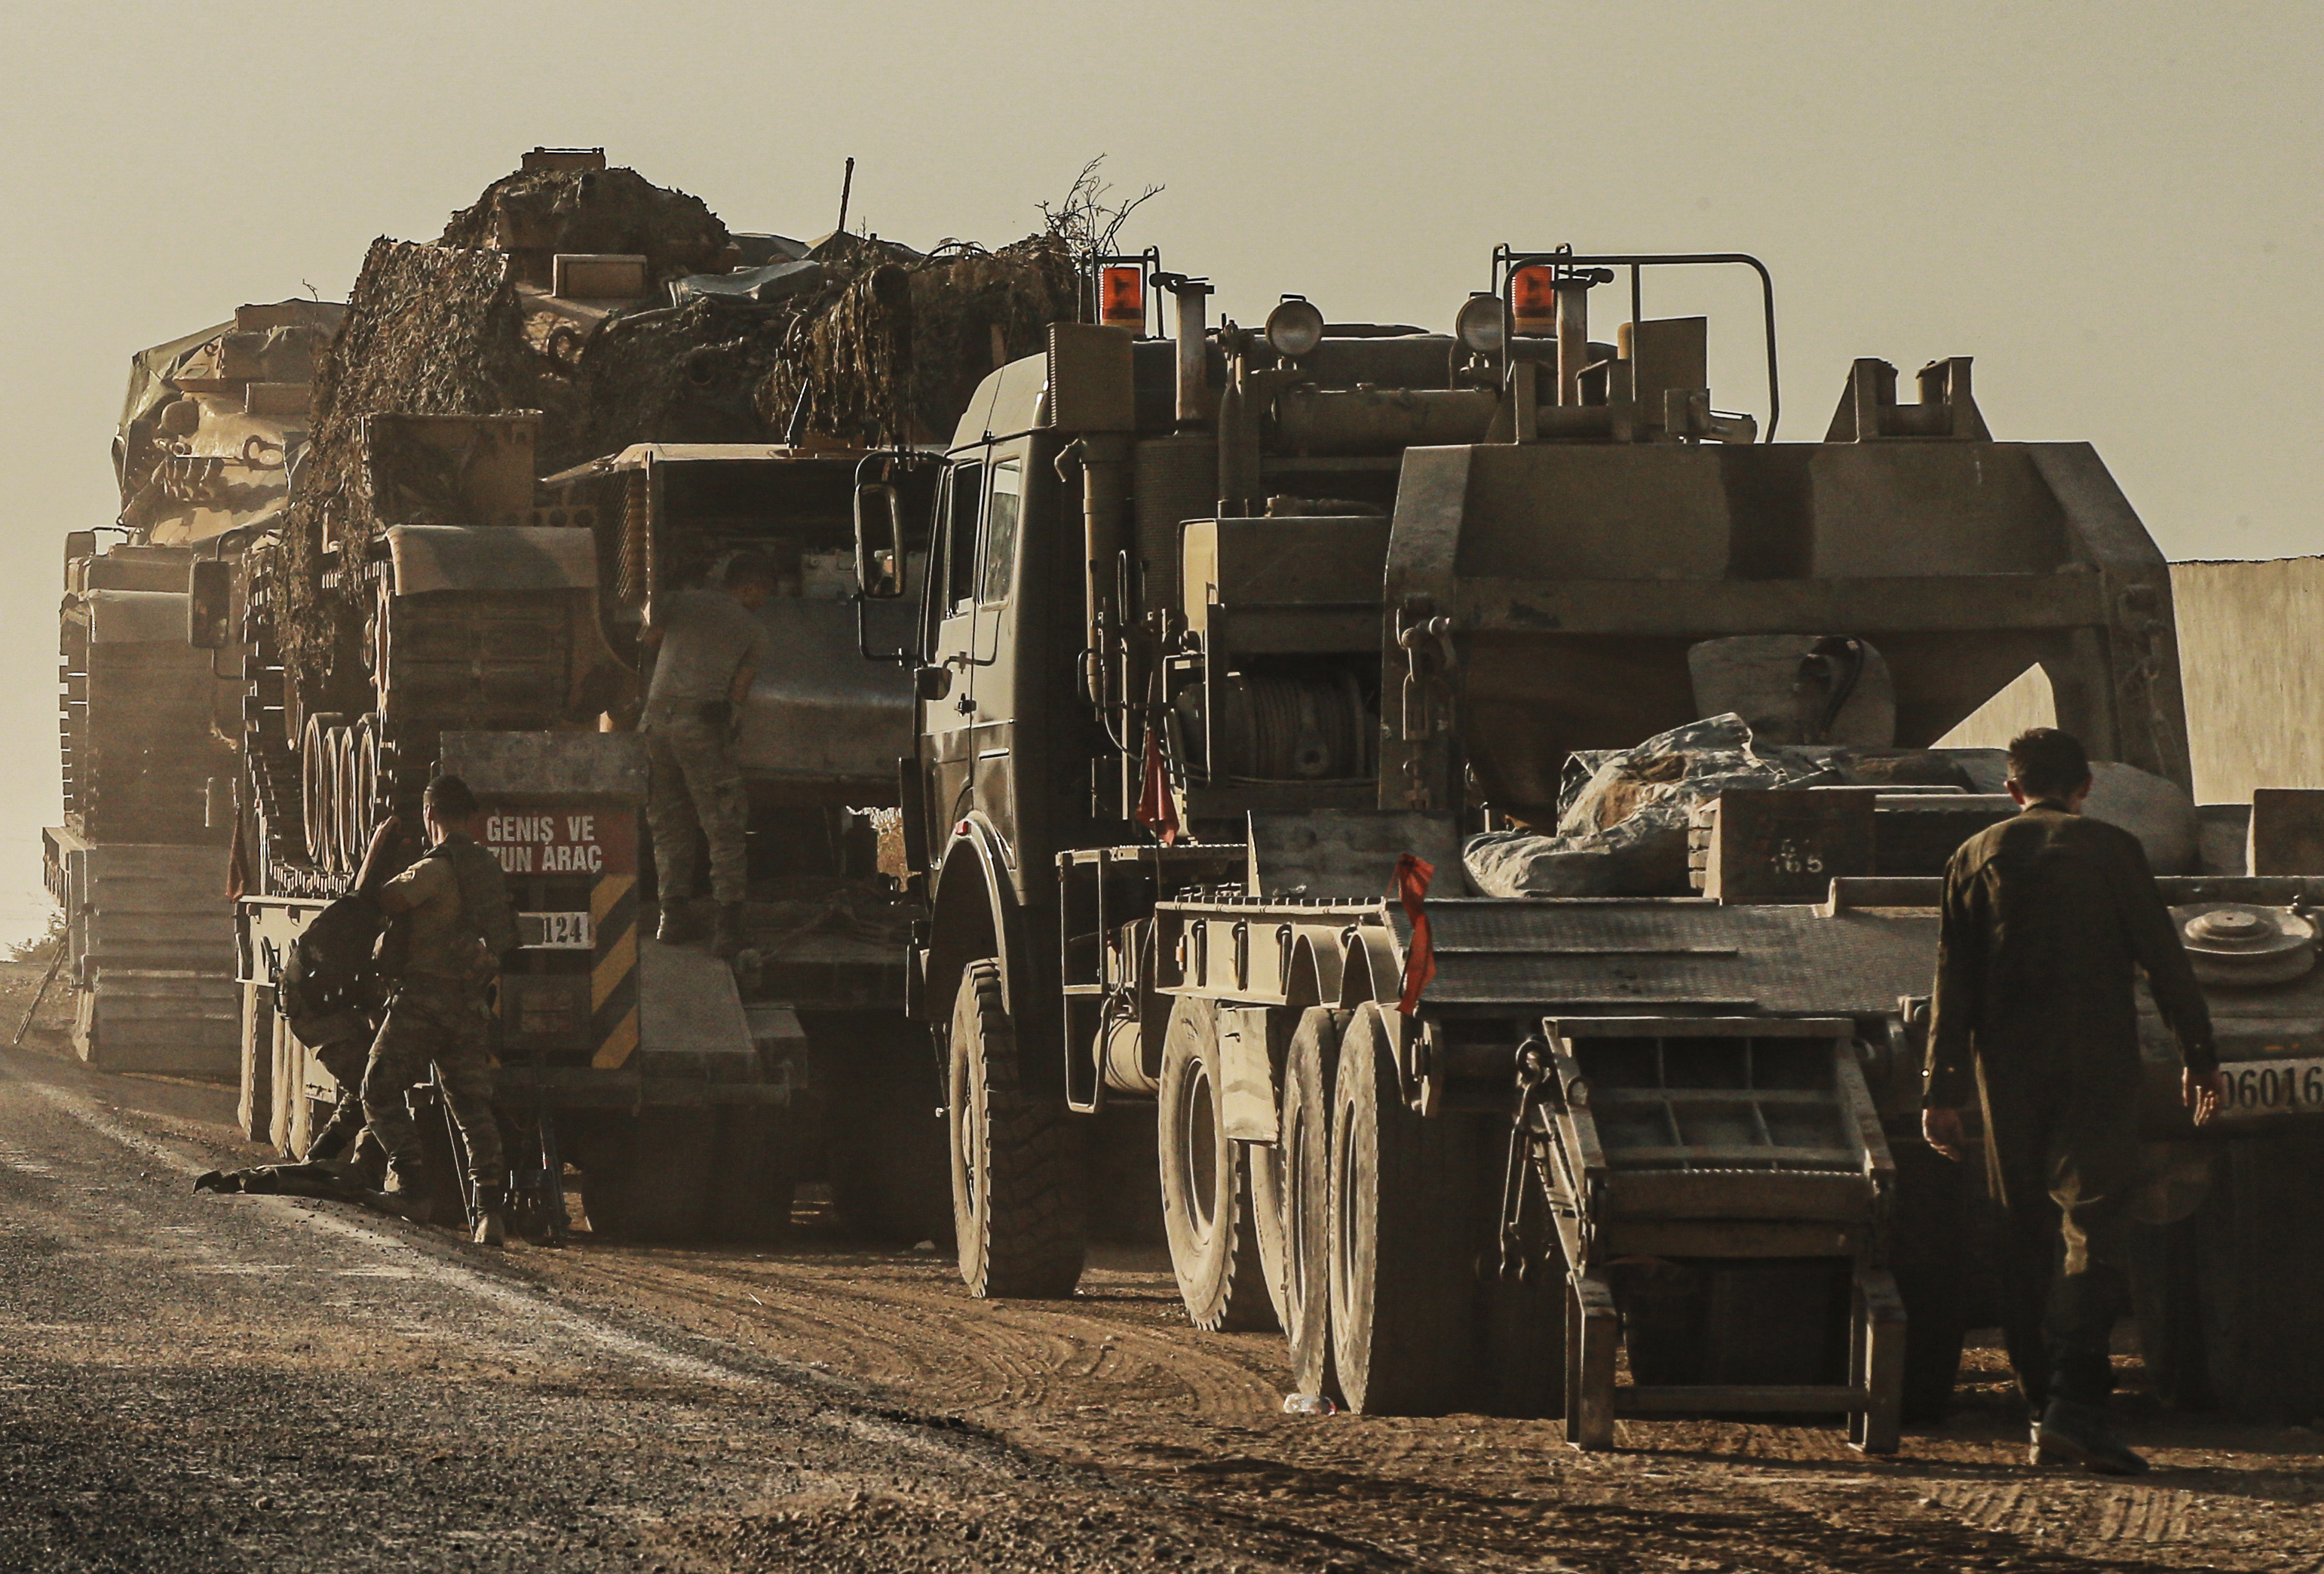 Turkish soldiers work on uploading tanks from trucks on a road towards the border of Syria in Sanliurfa province, Turkey, Monday, Oct. 14, 2019. Syrian troops entered several northern towns and villages Monday, getting close to the Turkish border as Turkey's army and opposition forces backed by Ankara marched south in the same direction, raising concerns of a clash between the two sides as Turkey's invasion of northern Syria entered its sixth day. (AP Photo/Emrah Gurel)